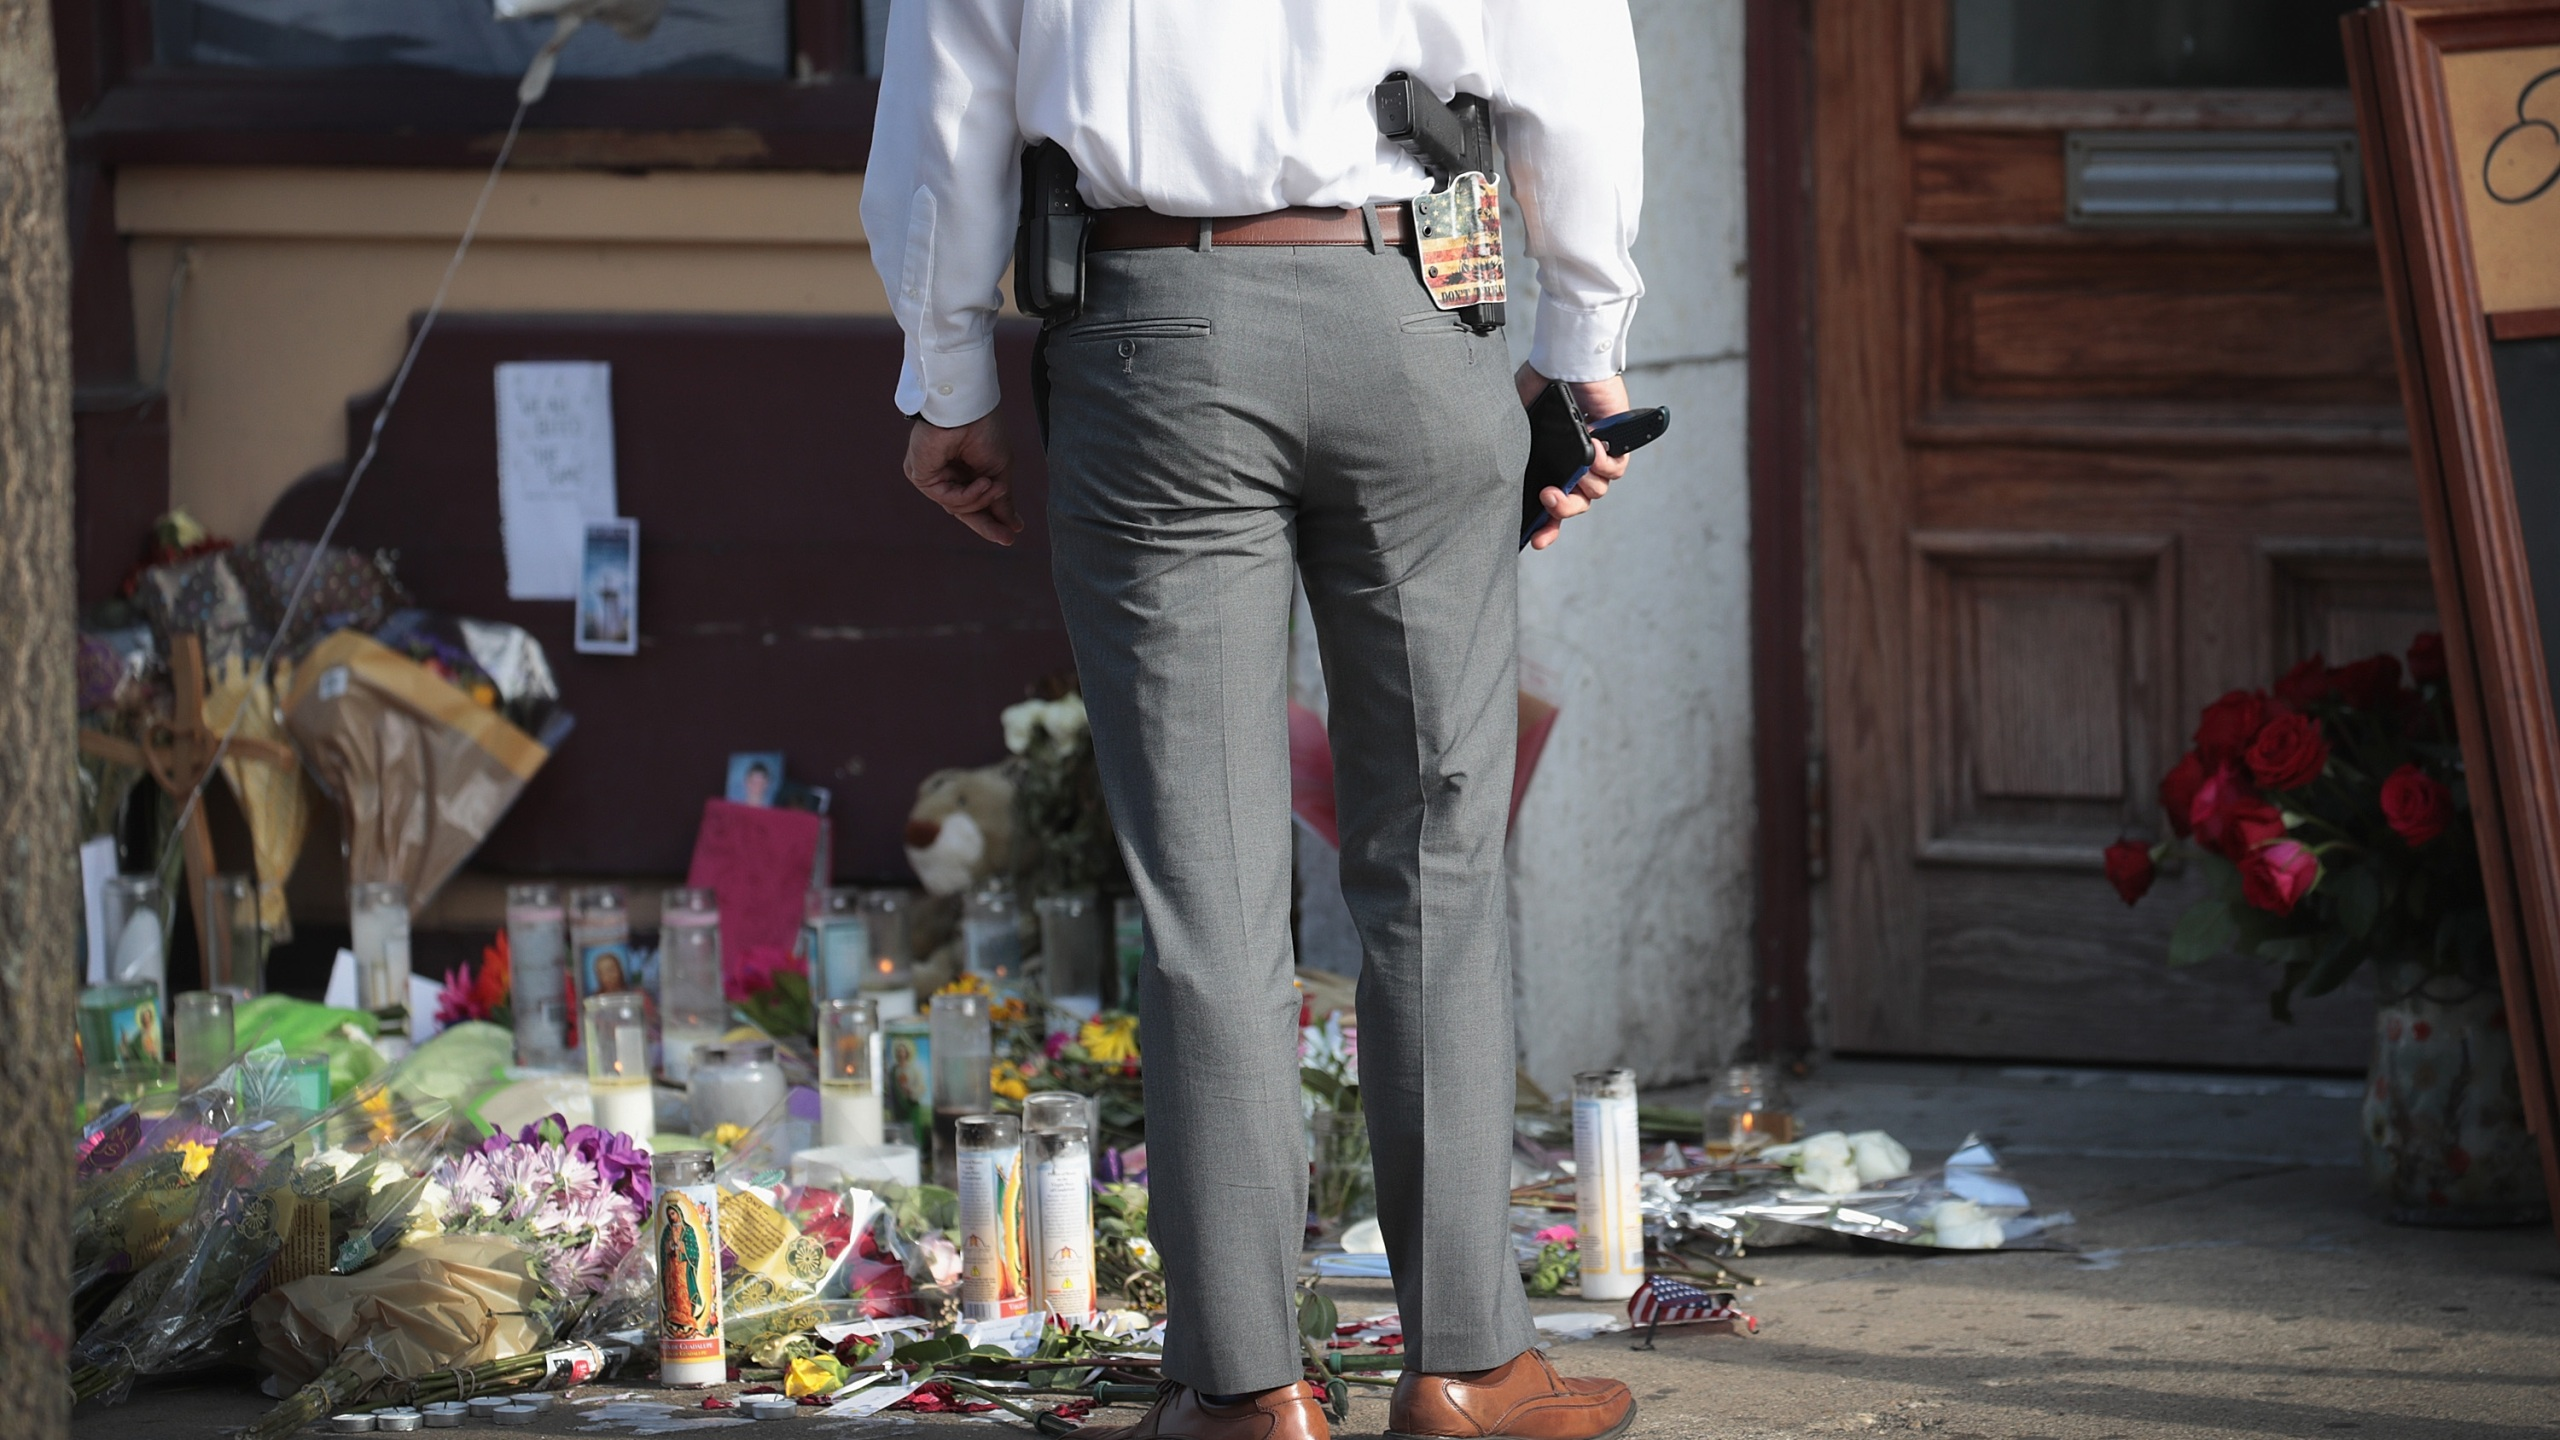 A Dayton police officer returns to search for more evidence at the scene of Sunday Morning's mass shooting in the Oregon District